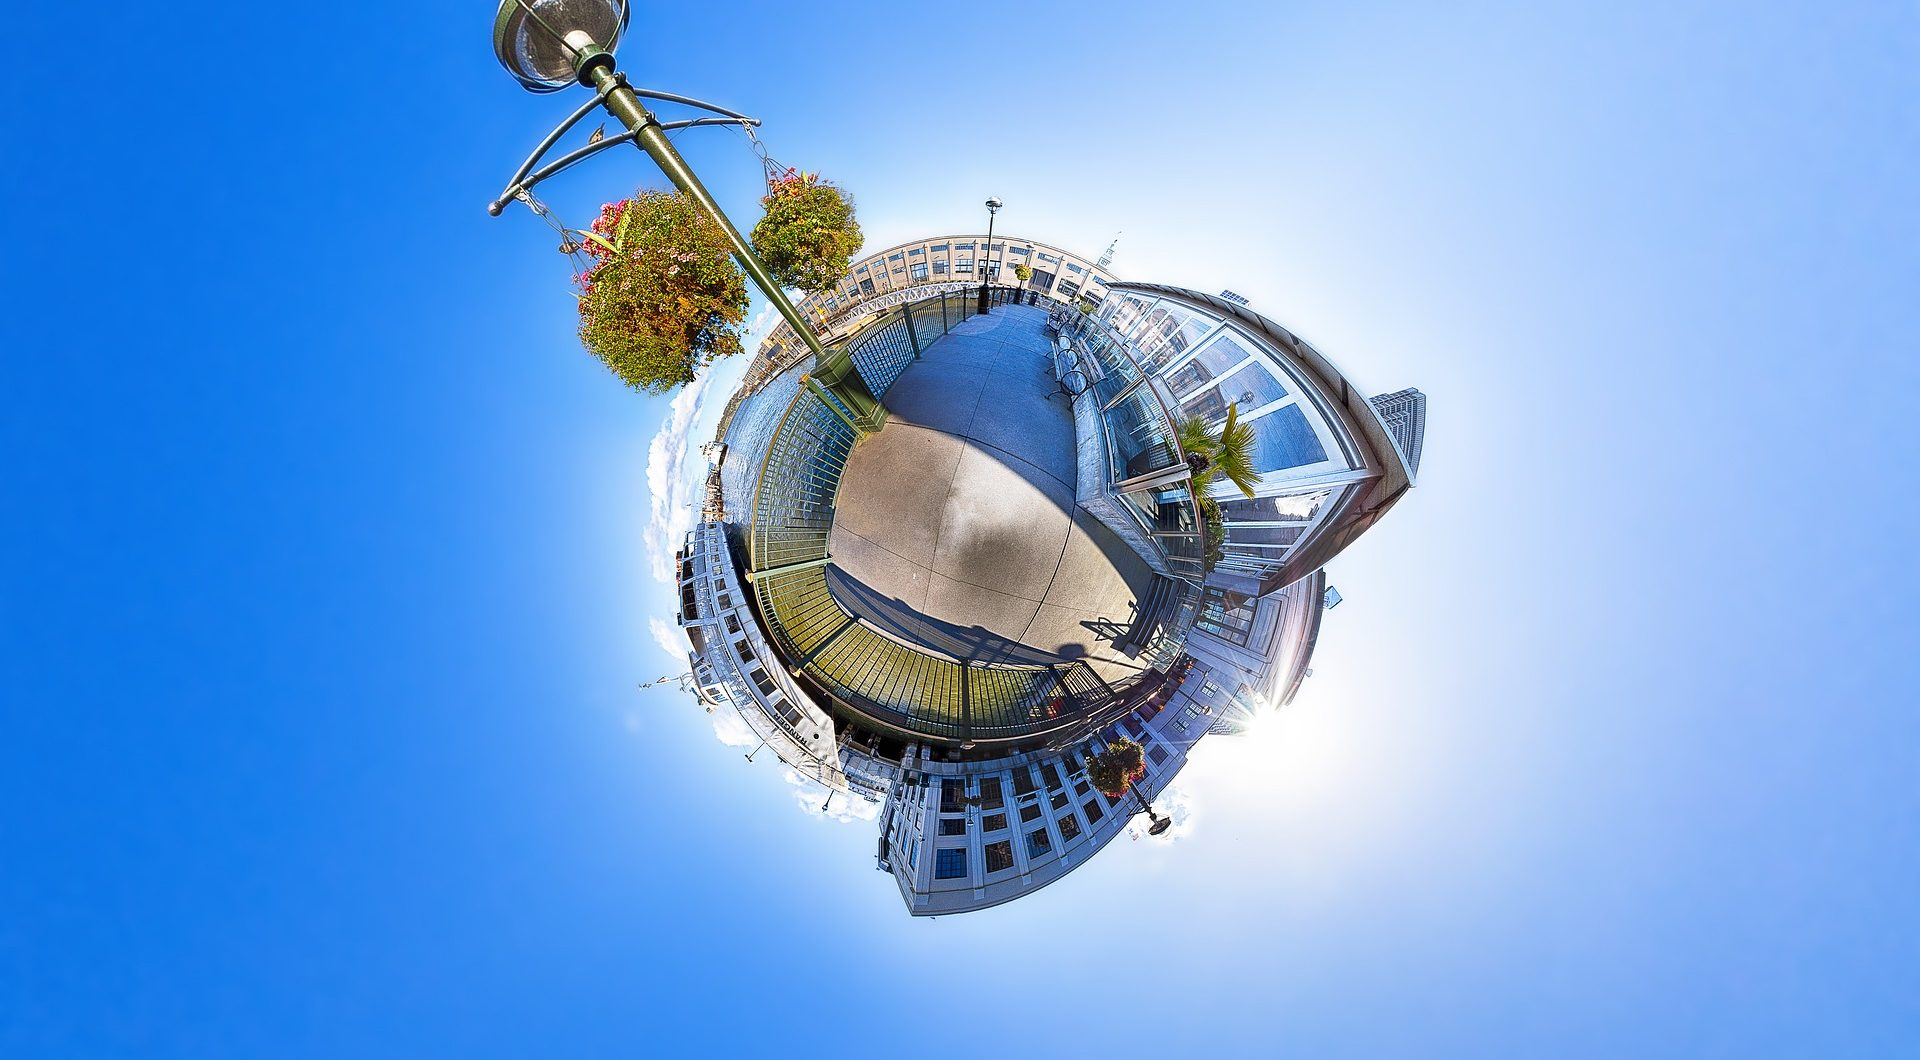 360 little planet view bei intervideo